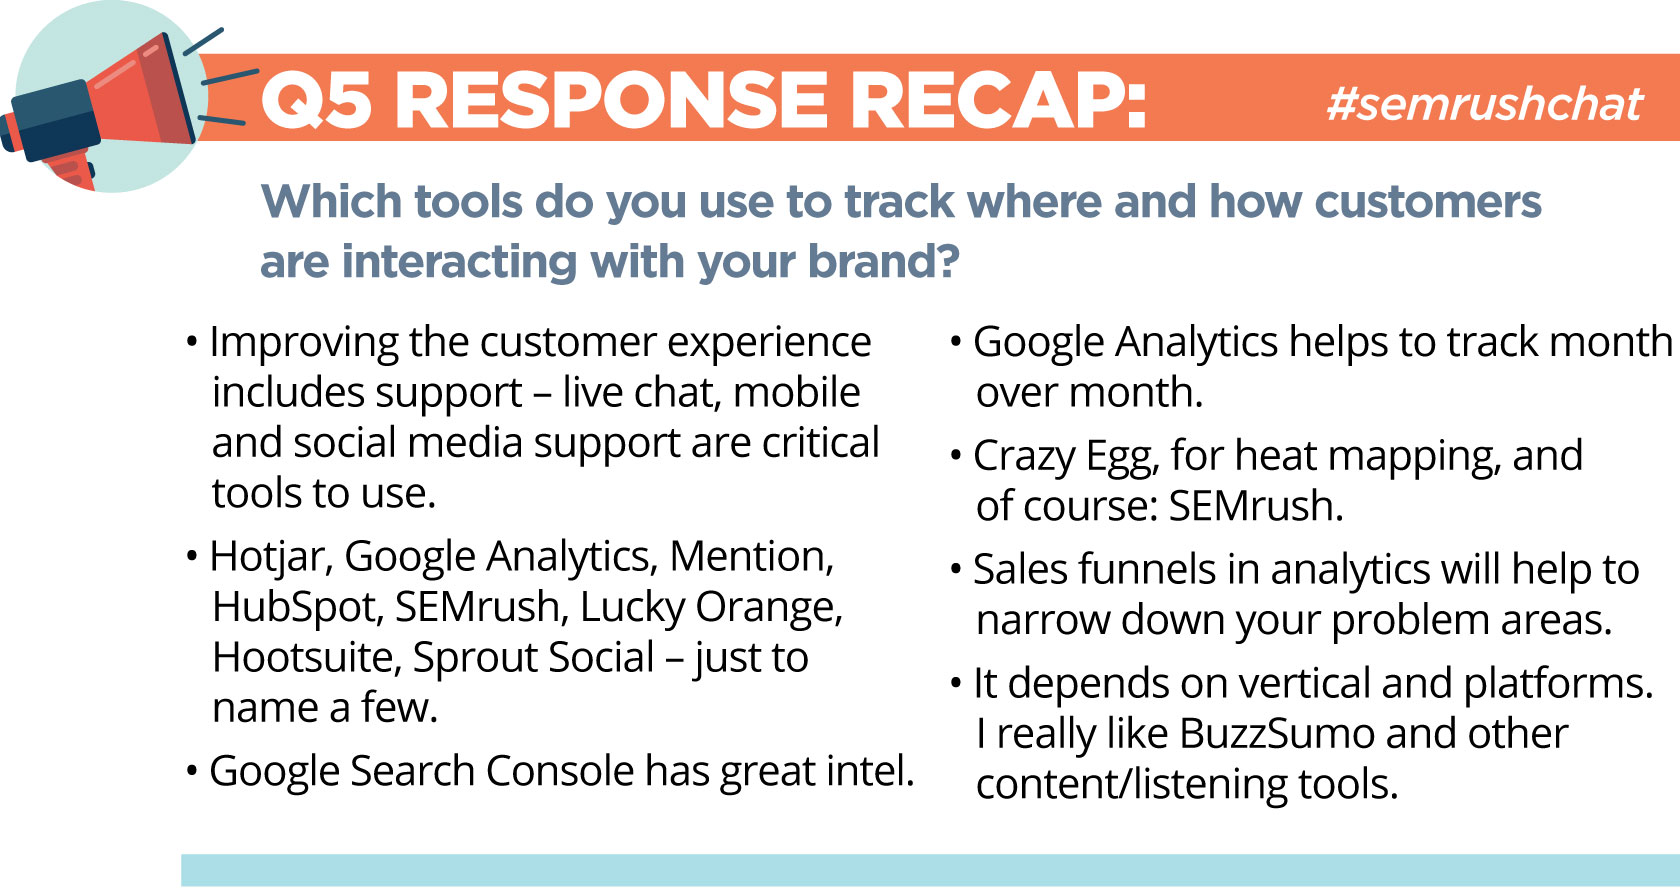 Everything You Need to Know About Omni-Channel Marketing #semrushchat. Image 4